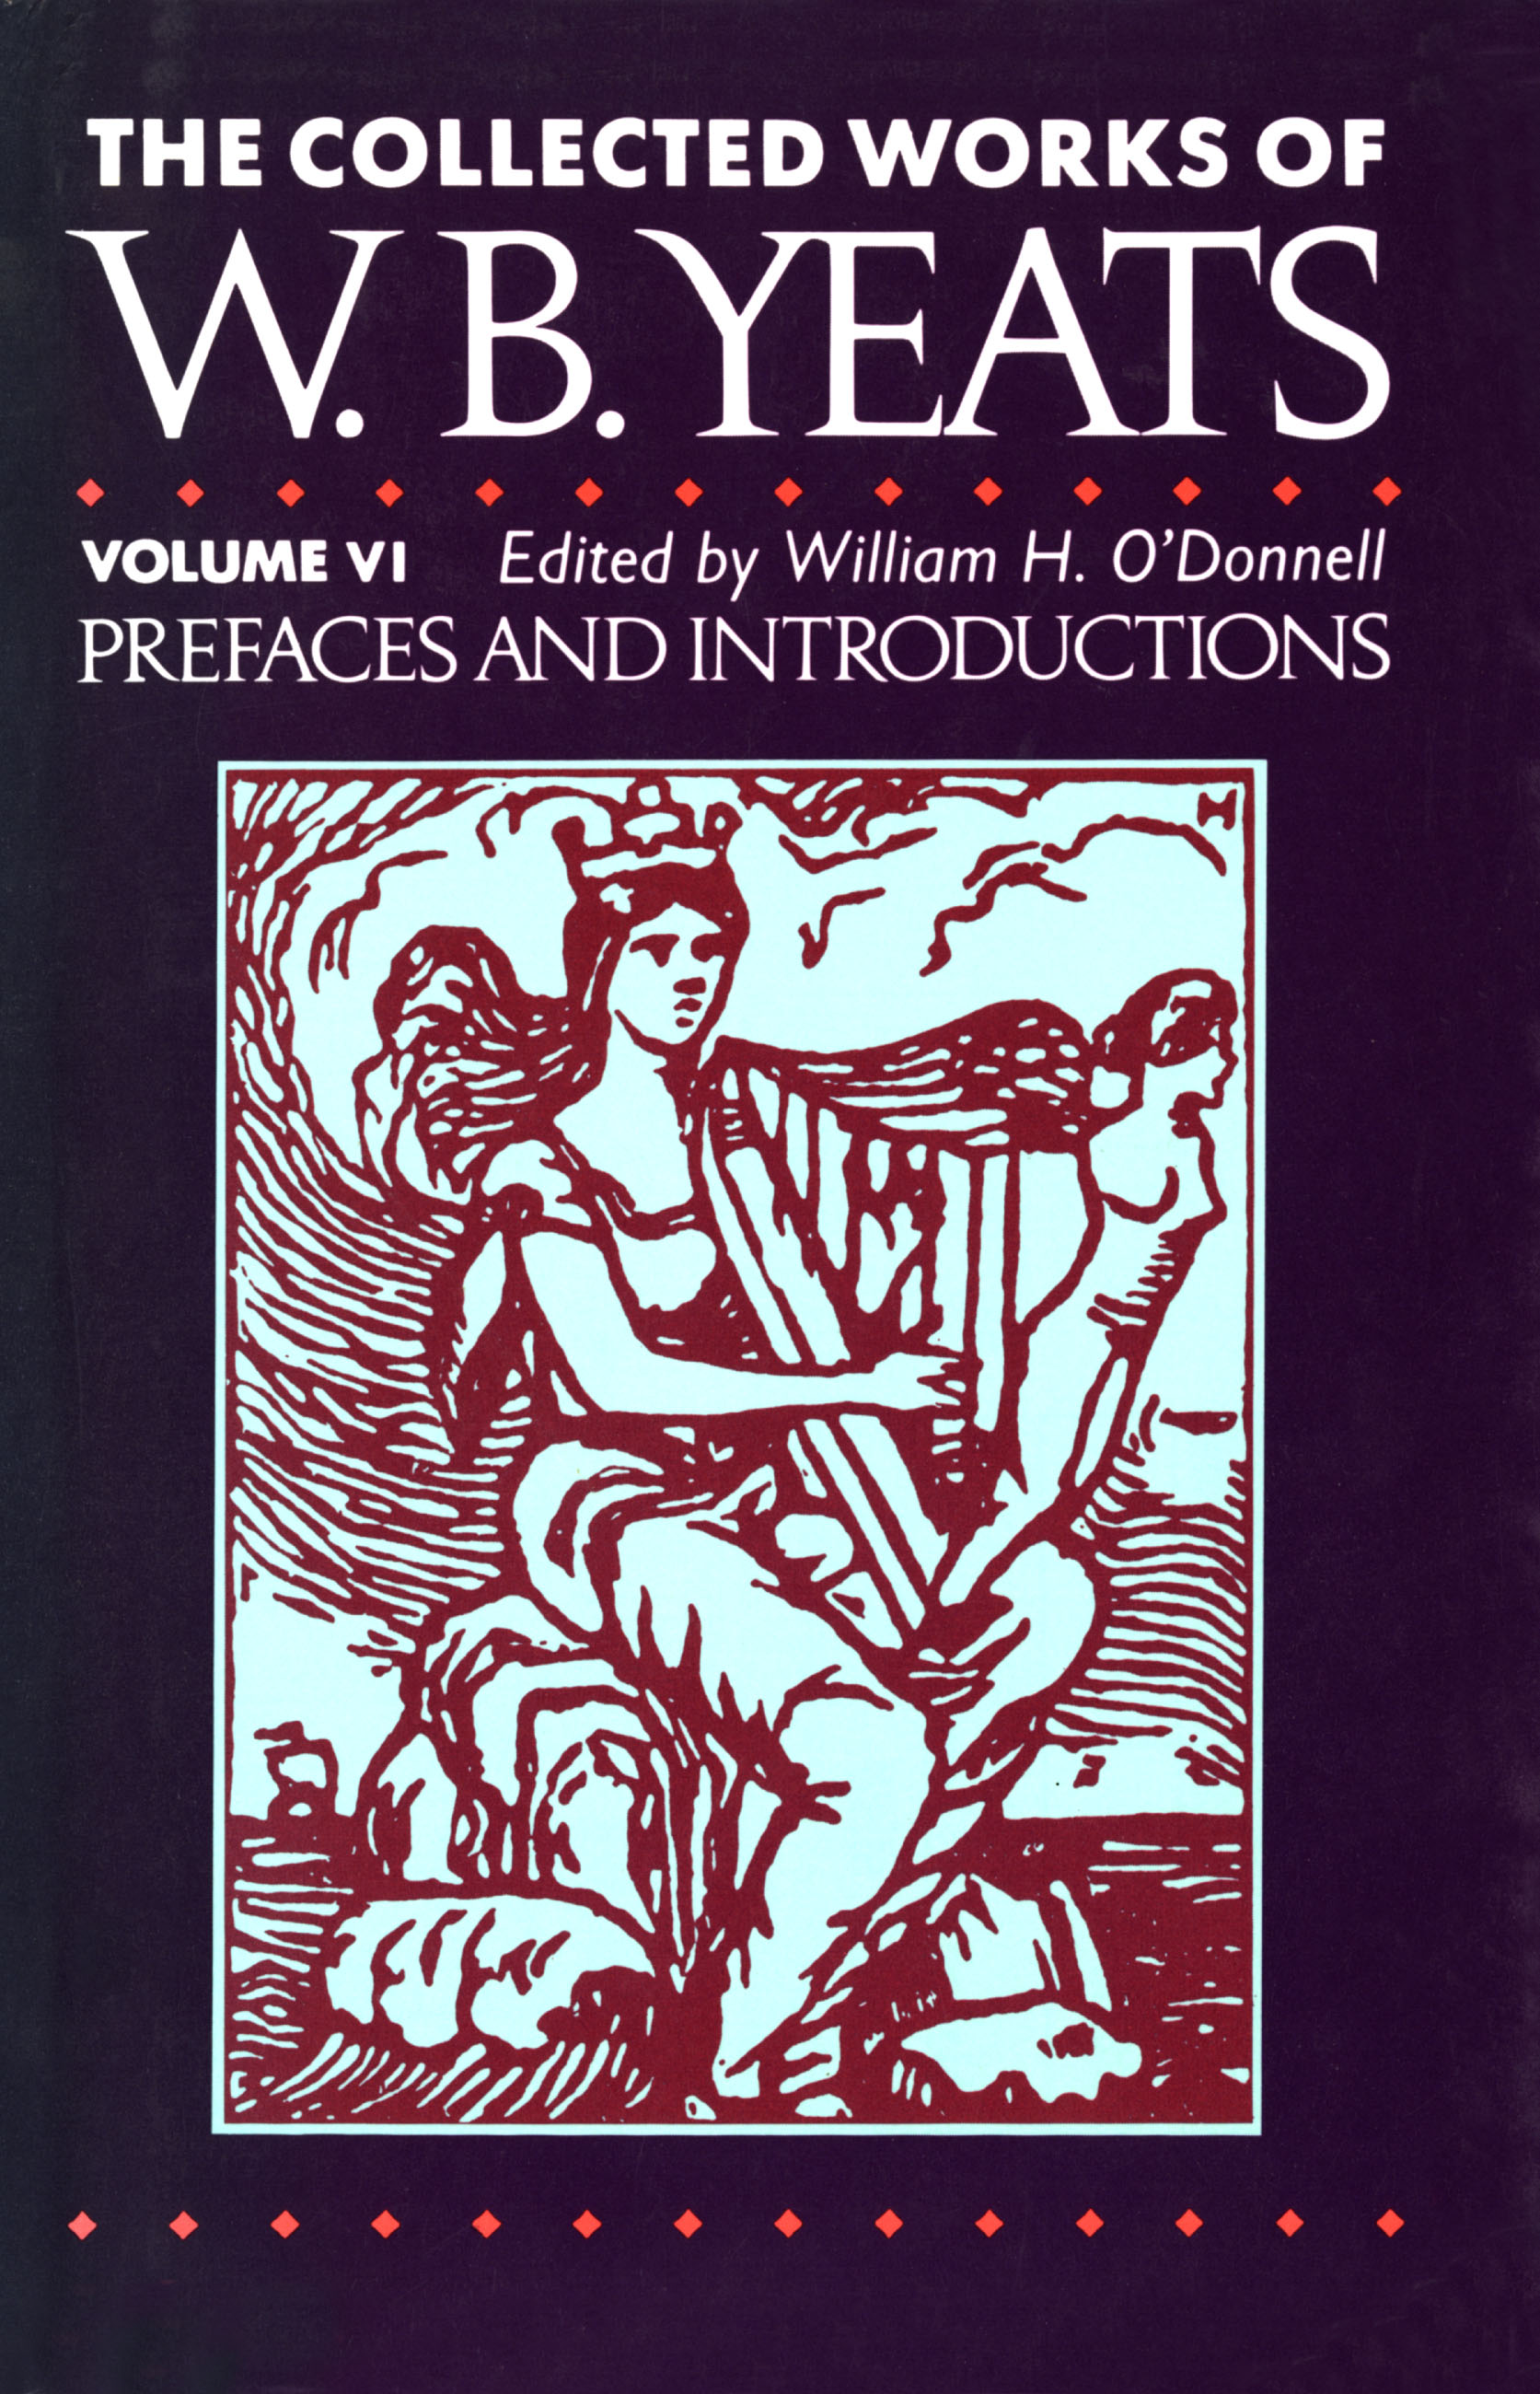 essays and introductions by w.b.yeats